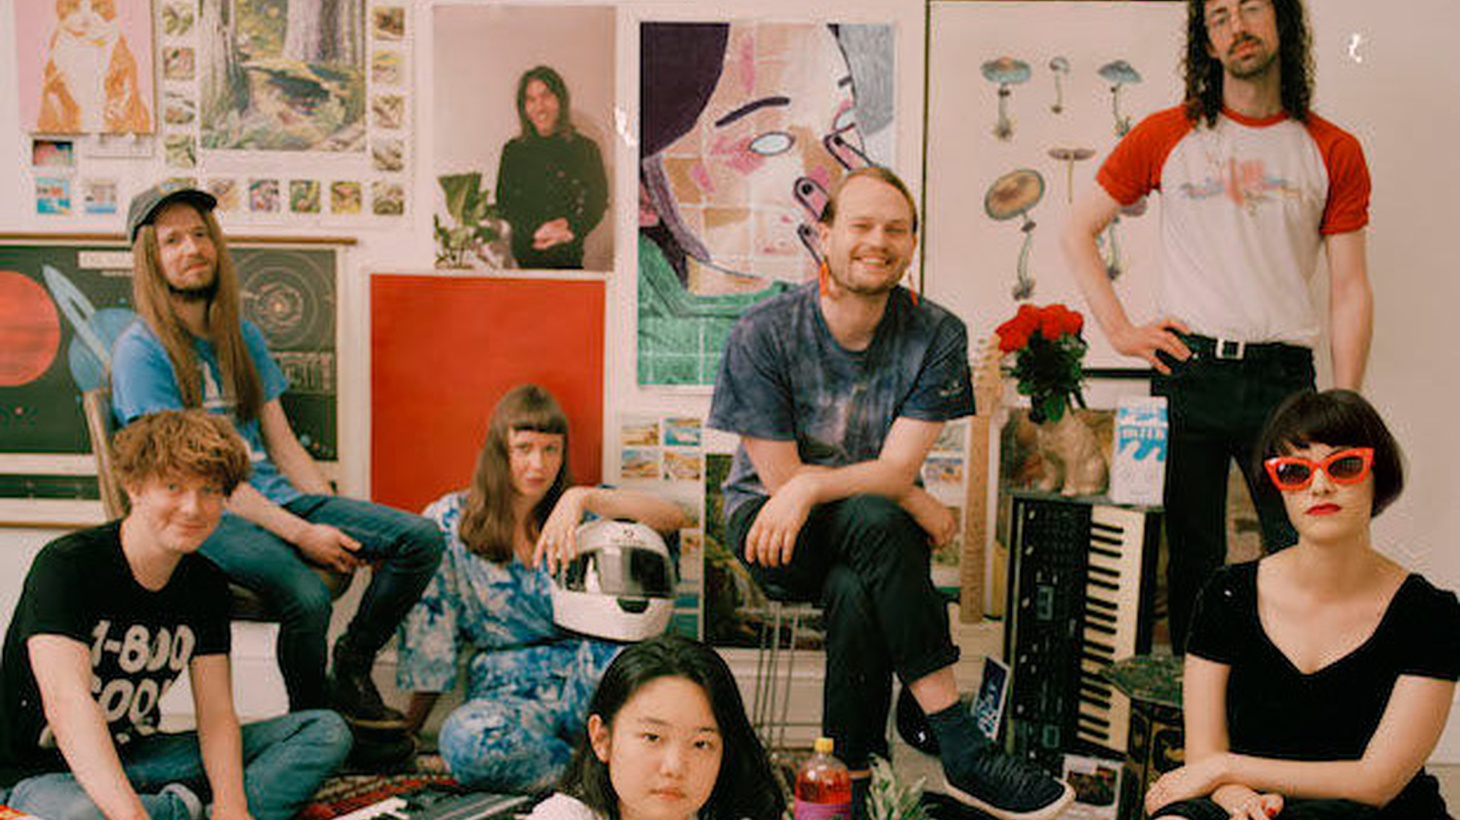 """Superorganism describes itself as """"a sprawling, multi-limbed collection of international musicians and pop culture junkies. Recruited from London, Japan, Australia and New Zealand, seven of the eight now live together in a house/DIY studio/band HQ in Homerton, East London."""